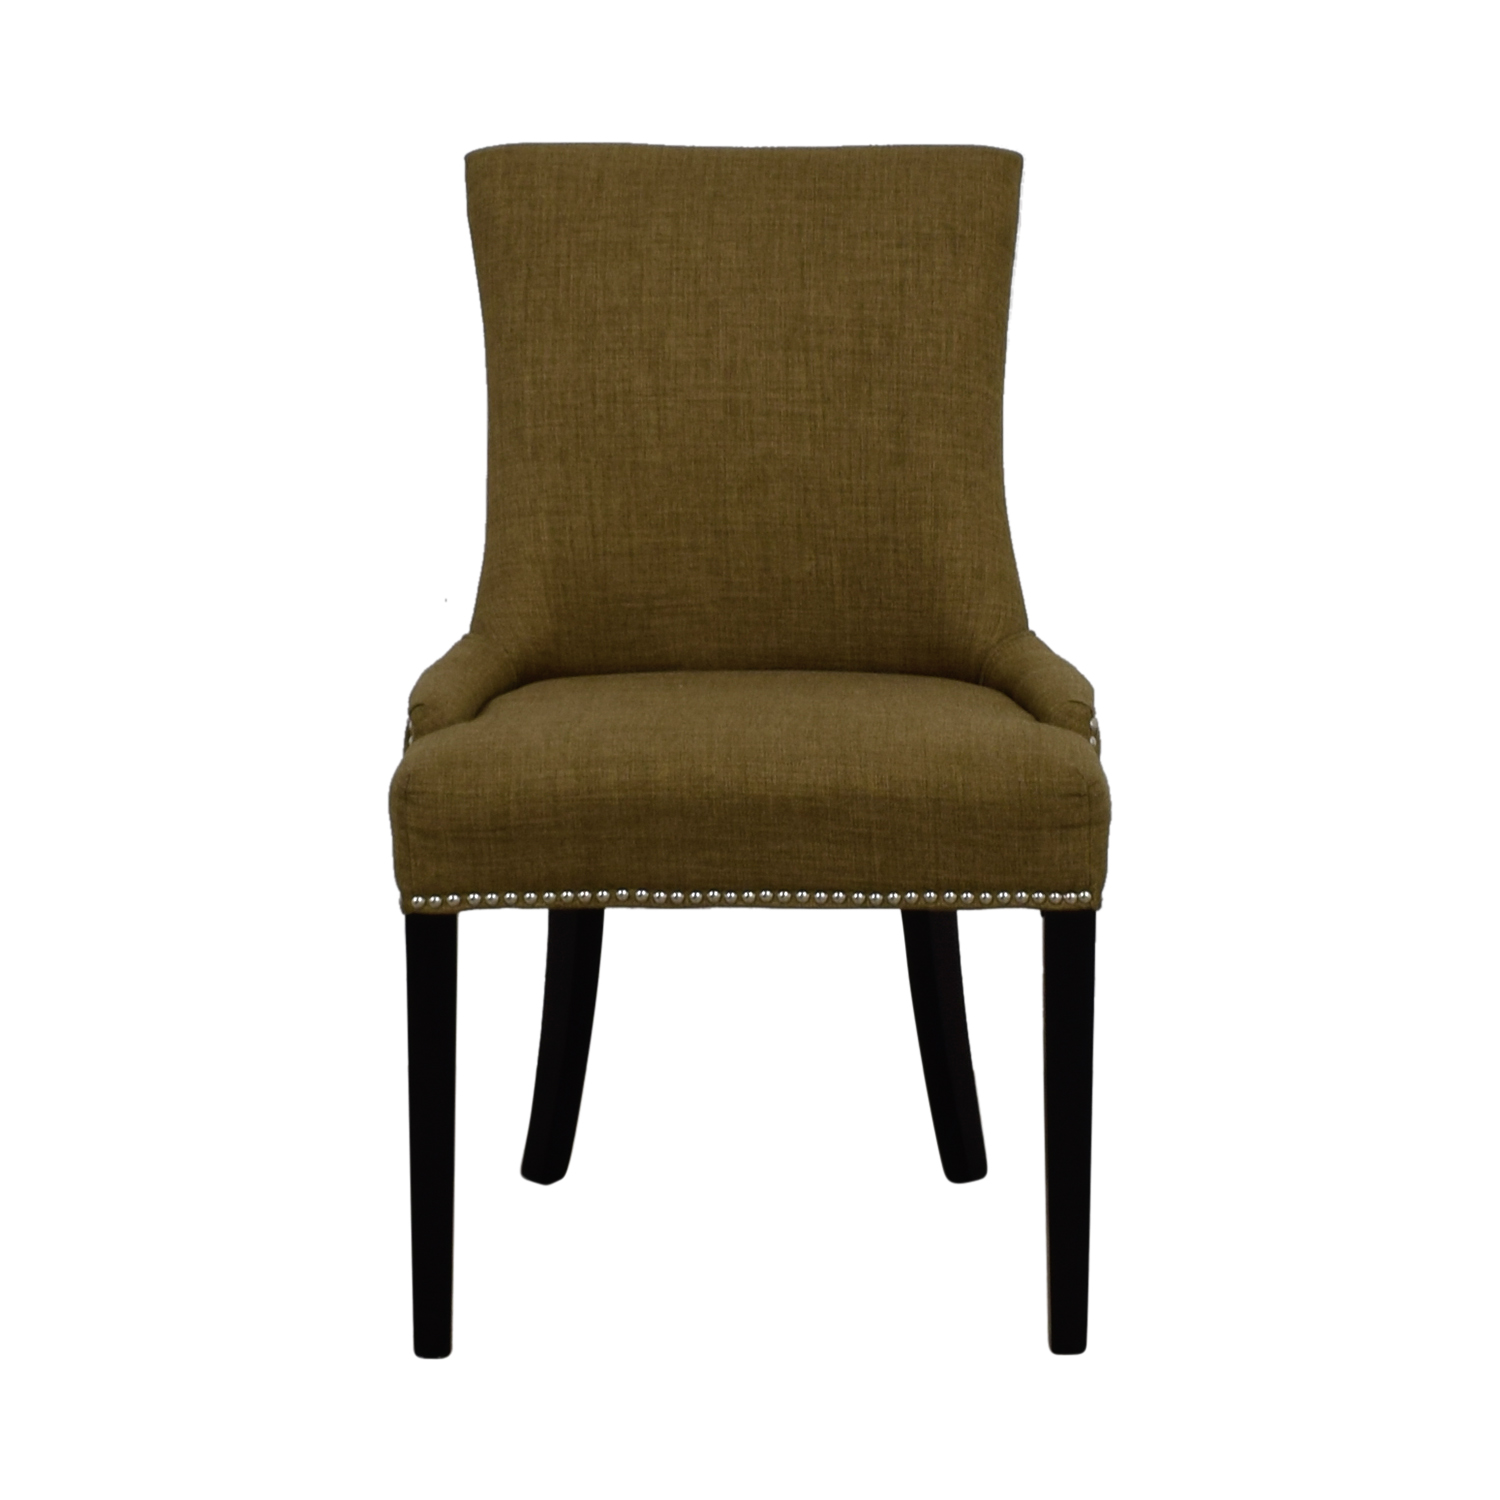 Stupendous 87 Off Abbyson Abbyson Newport Tan Fabric Nailhead Dining Chair Chairs Bralicious Painted Fabric Chair Ideas Braliciousco